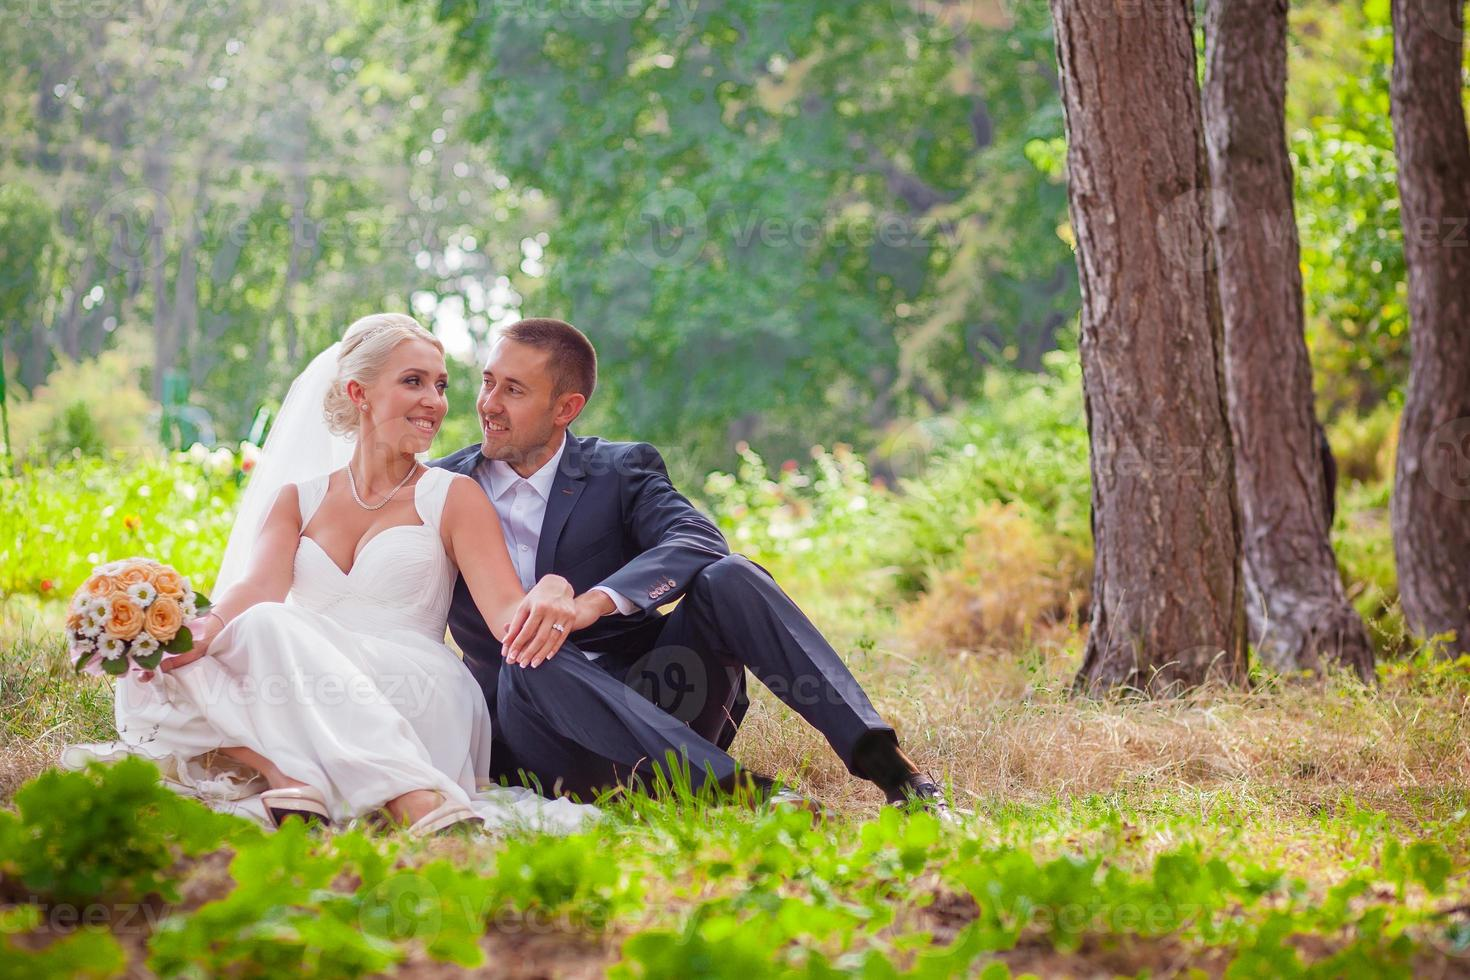 the bride and groom resting on grass in park photo